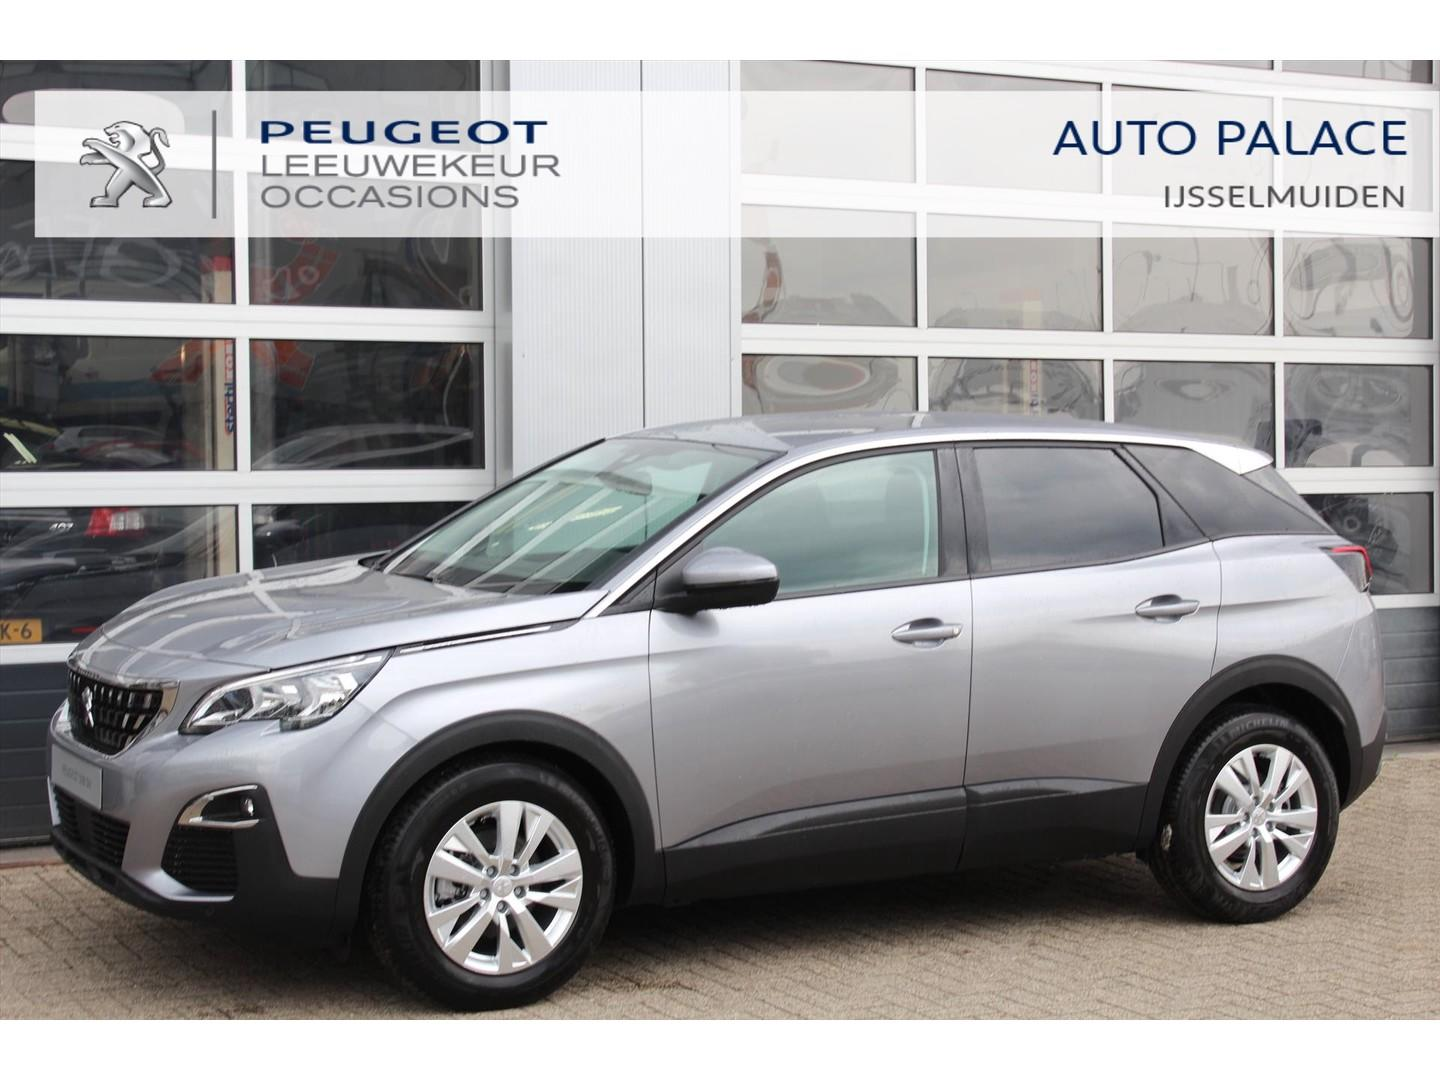 Peugeot 3008 1.2 puretech 130pk automaat blue lease executive